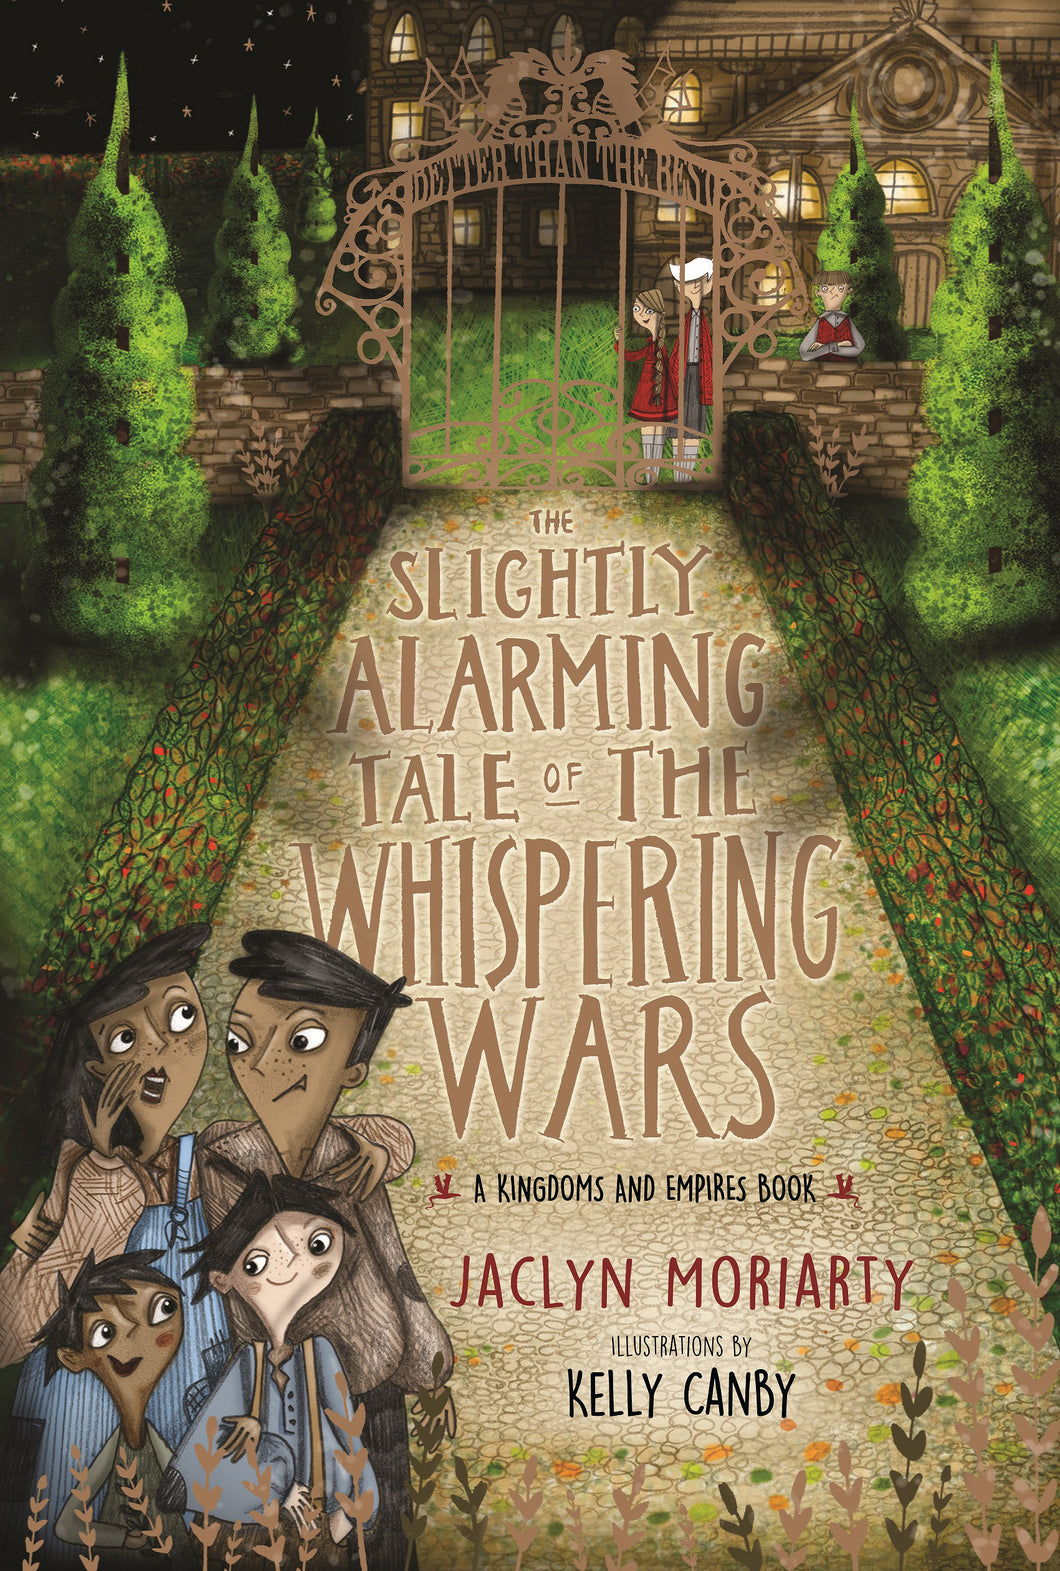 A Kingdoms and Empires Book 2: The Slightly Alarming Tales of the Whispering Wars by Jaclyn Moriarty